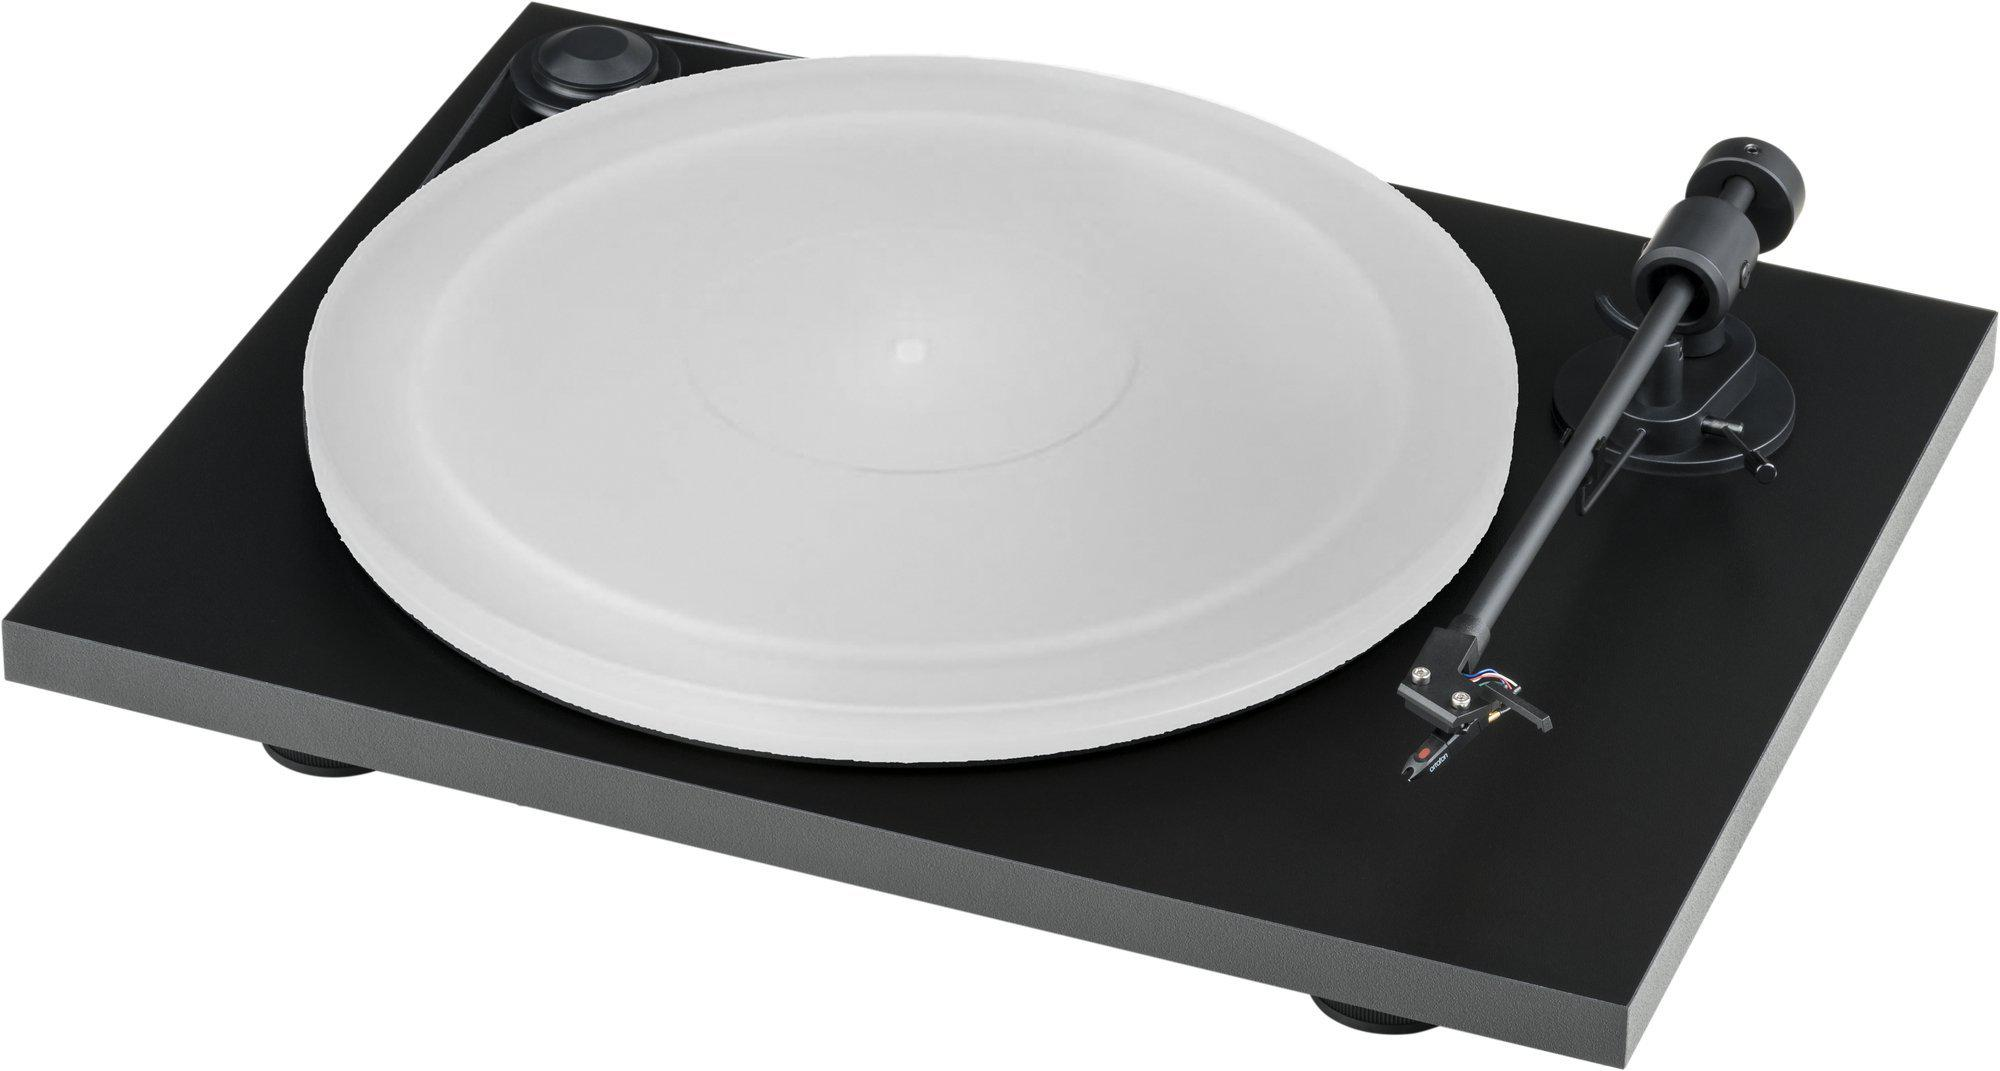 Buy Record Players Turntables Online - Audio Technica, Project, Rega